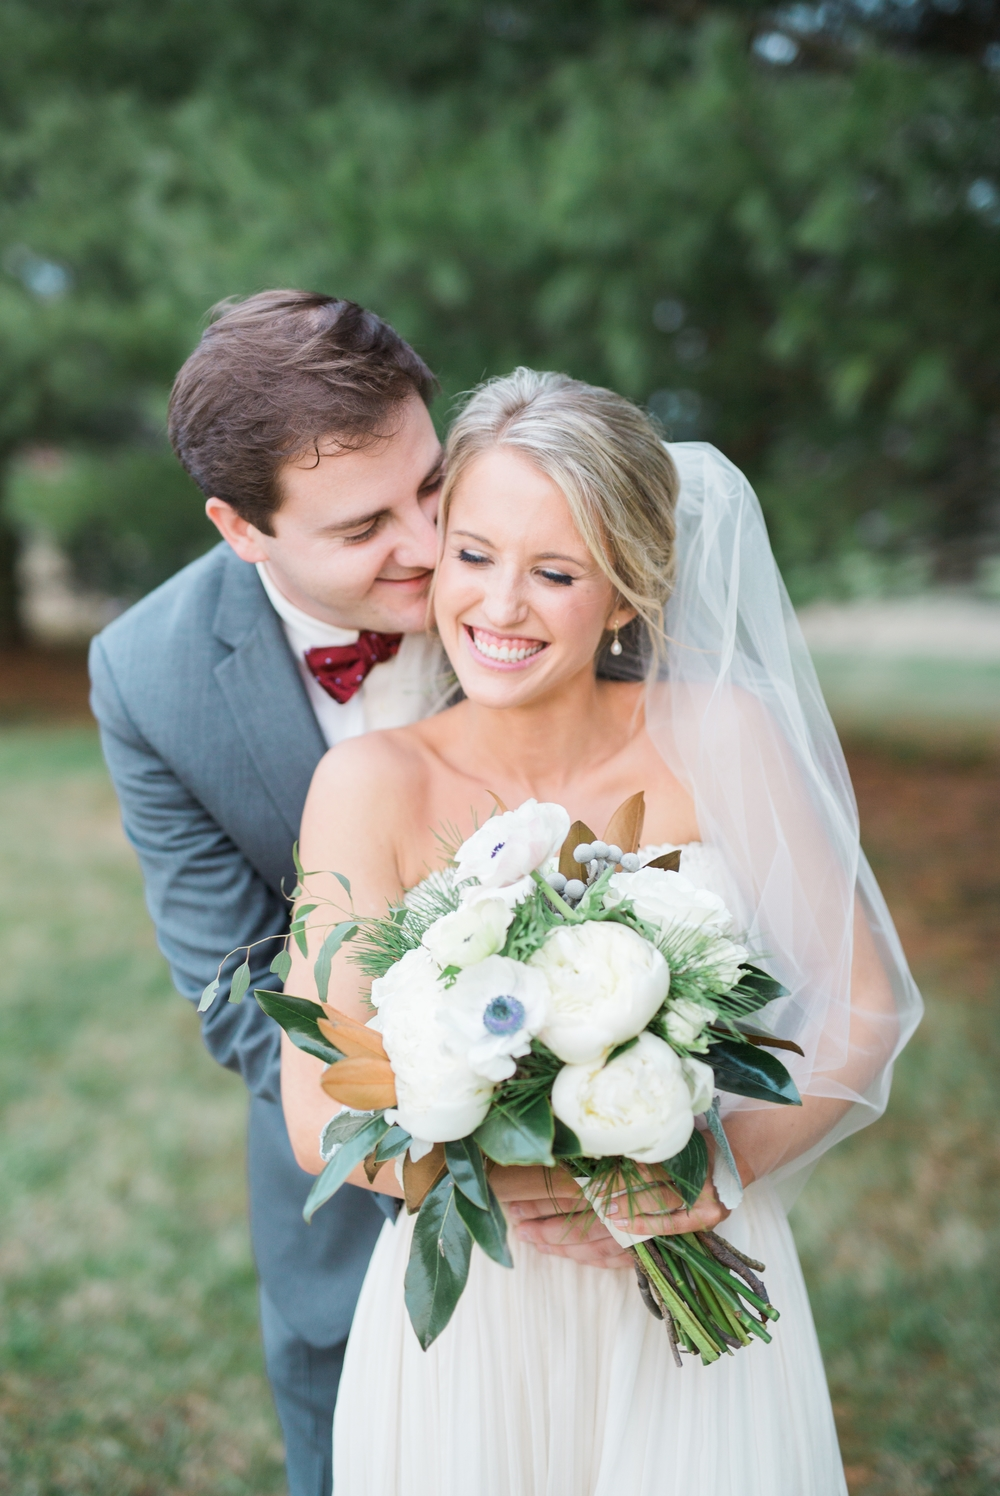 Carter and Molly Blanton - Wedding 43.jpg